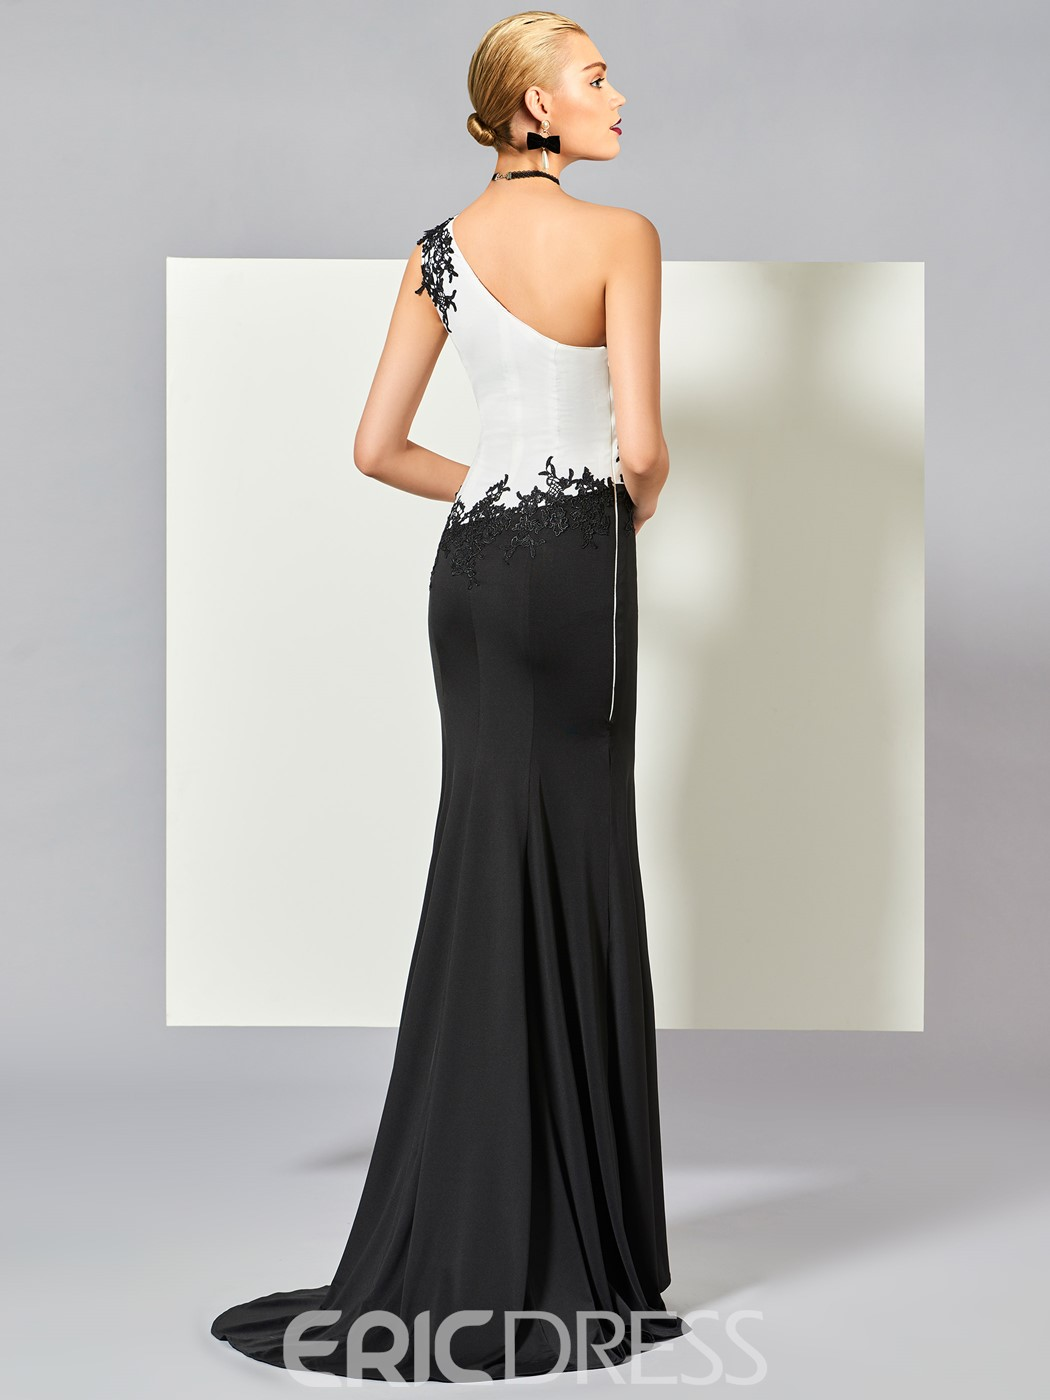 Ericdress Sheath One Shoulder Applique Evening Dress With Sweep Train